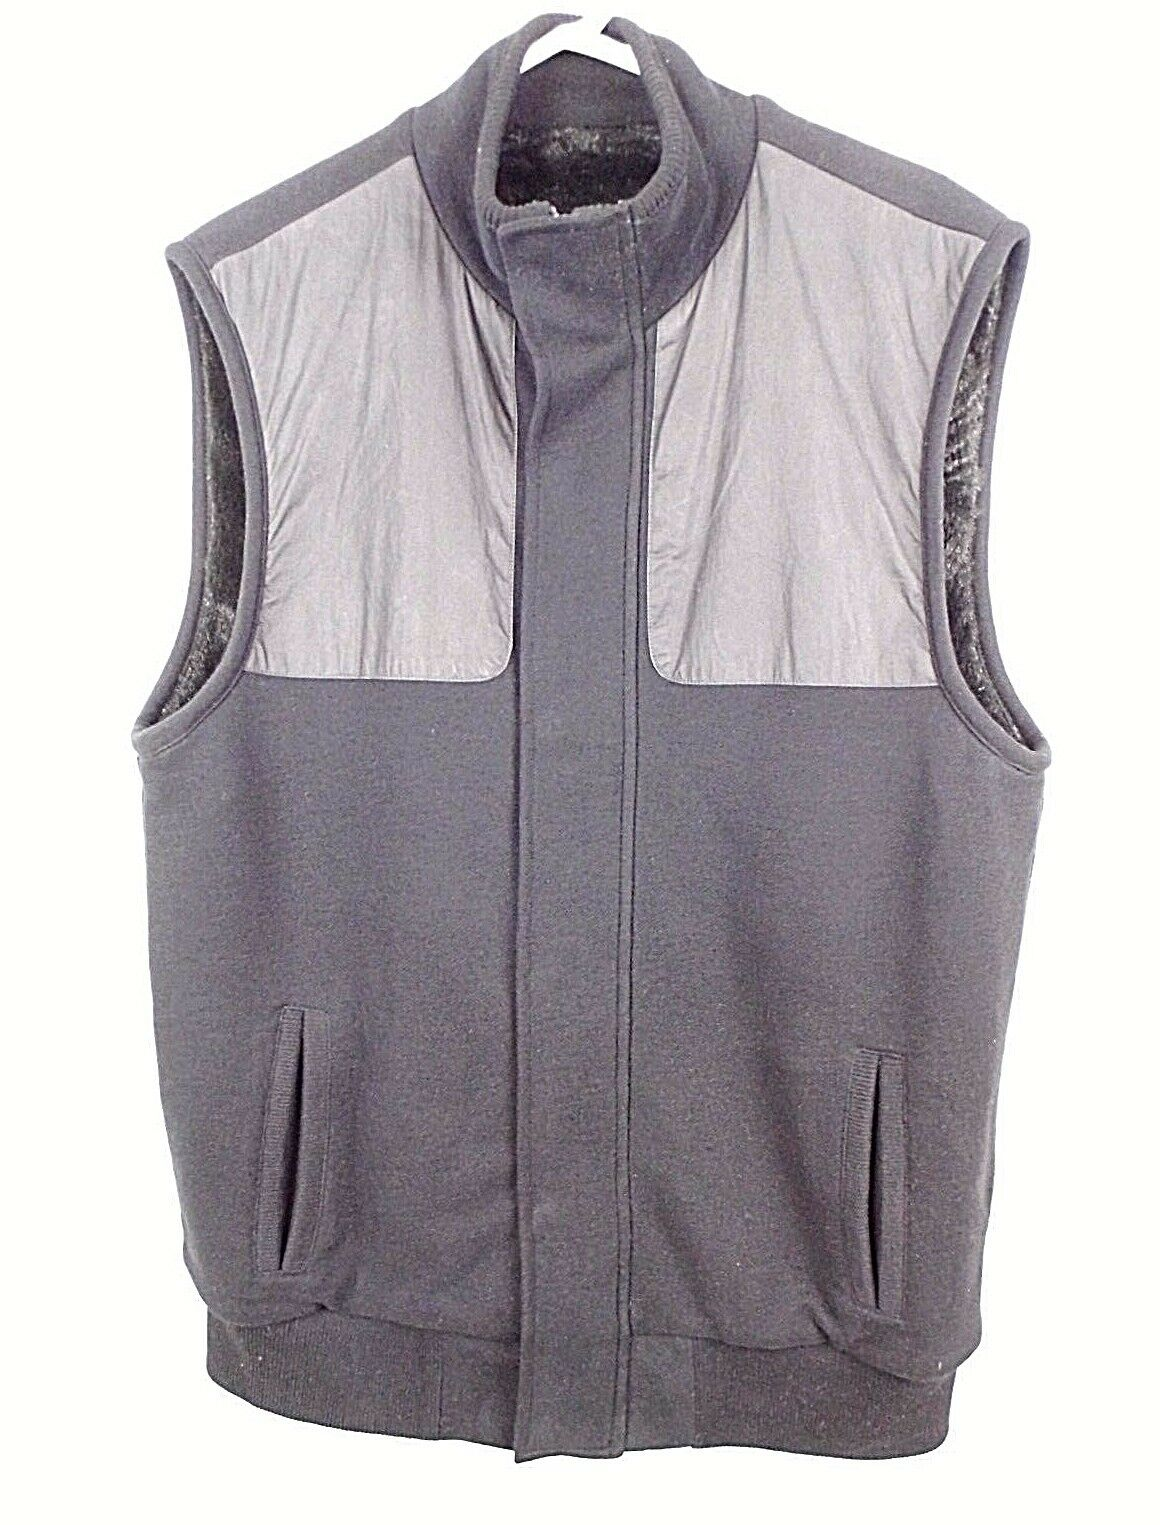 Mens Armani Exchange Vest Size L Large A X Faux Fur Lined Hunting Shooting Style